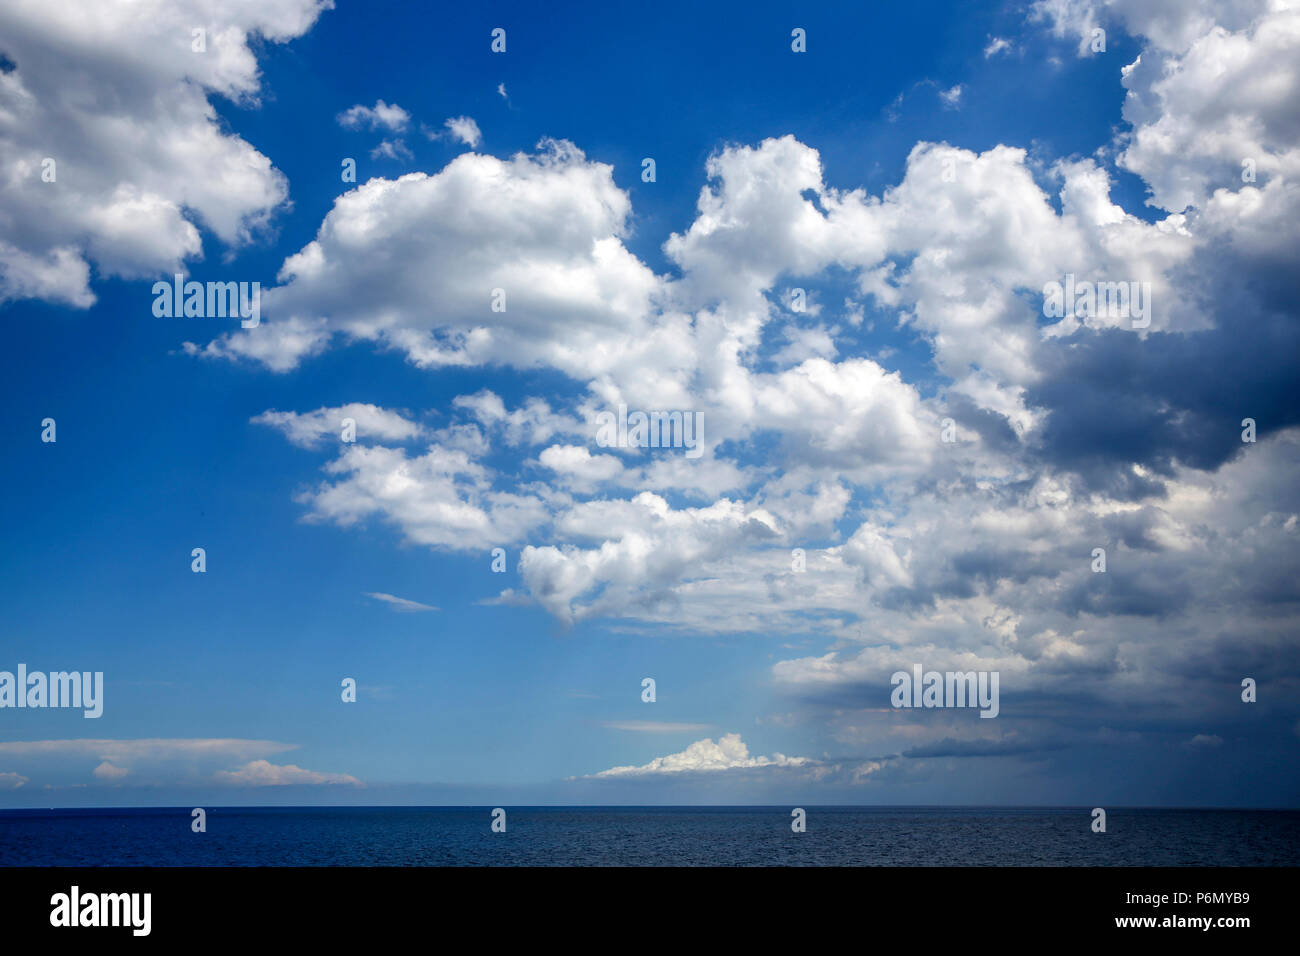 Cloudy sky in Salento, Italy. - Stock Image